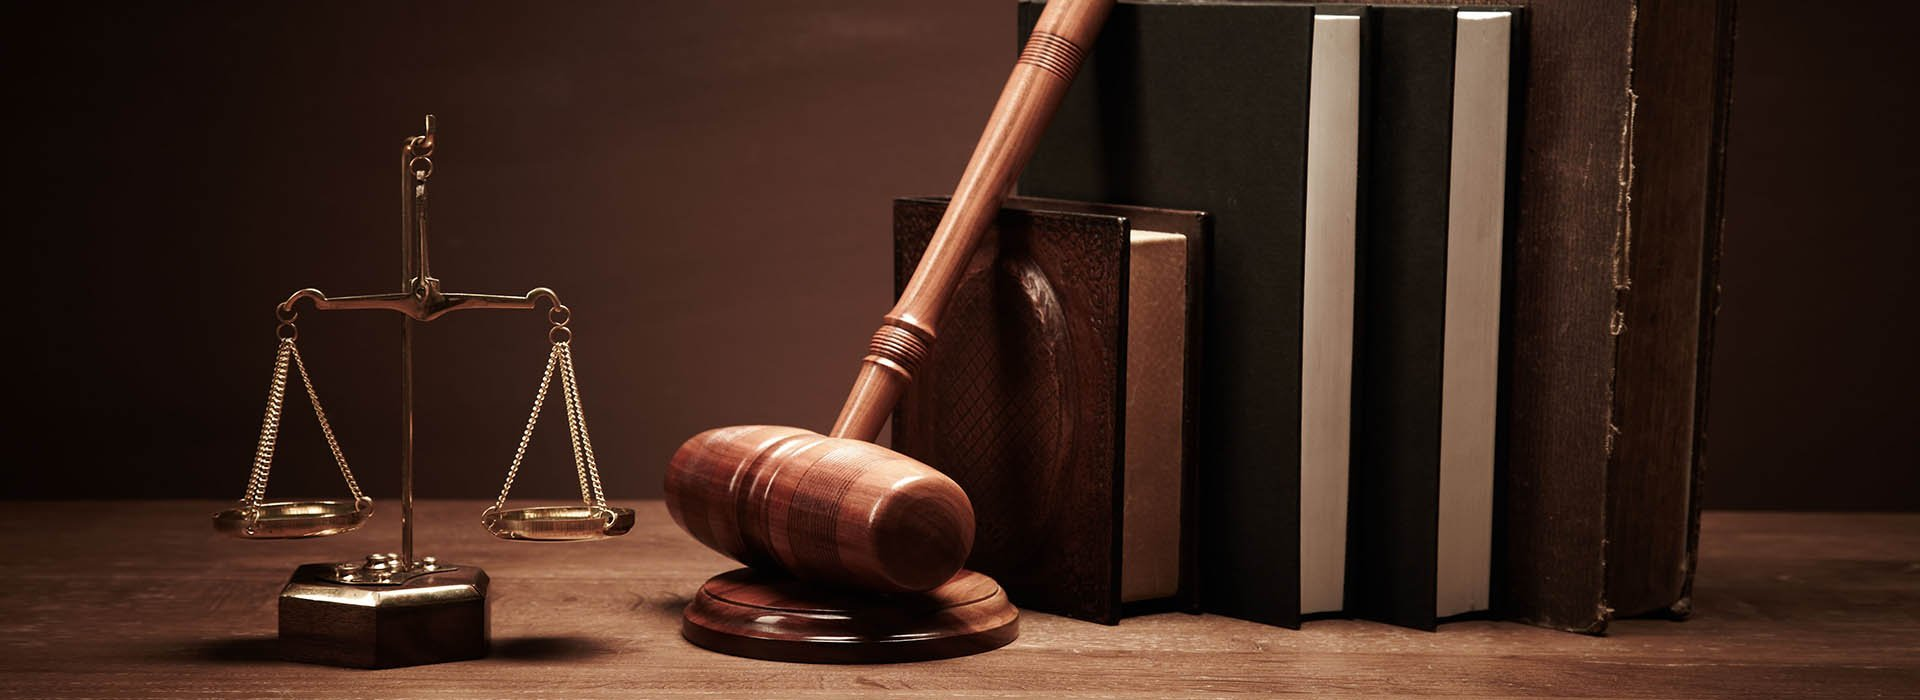 Gavel with law books